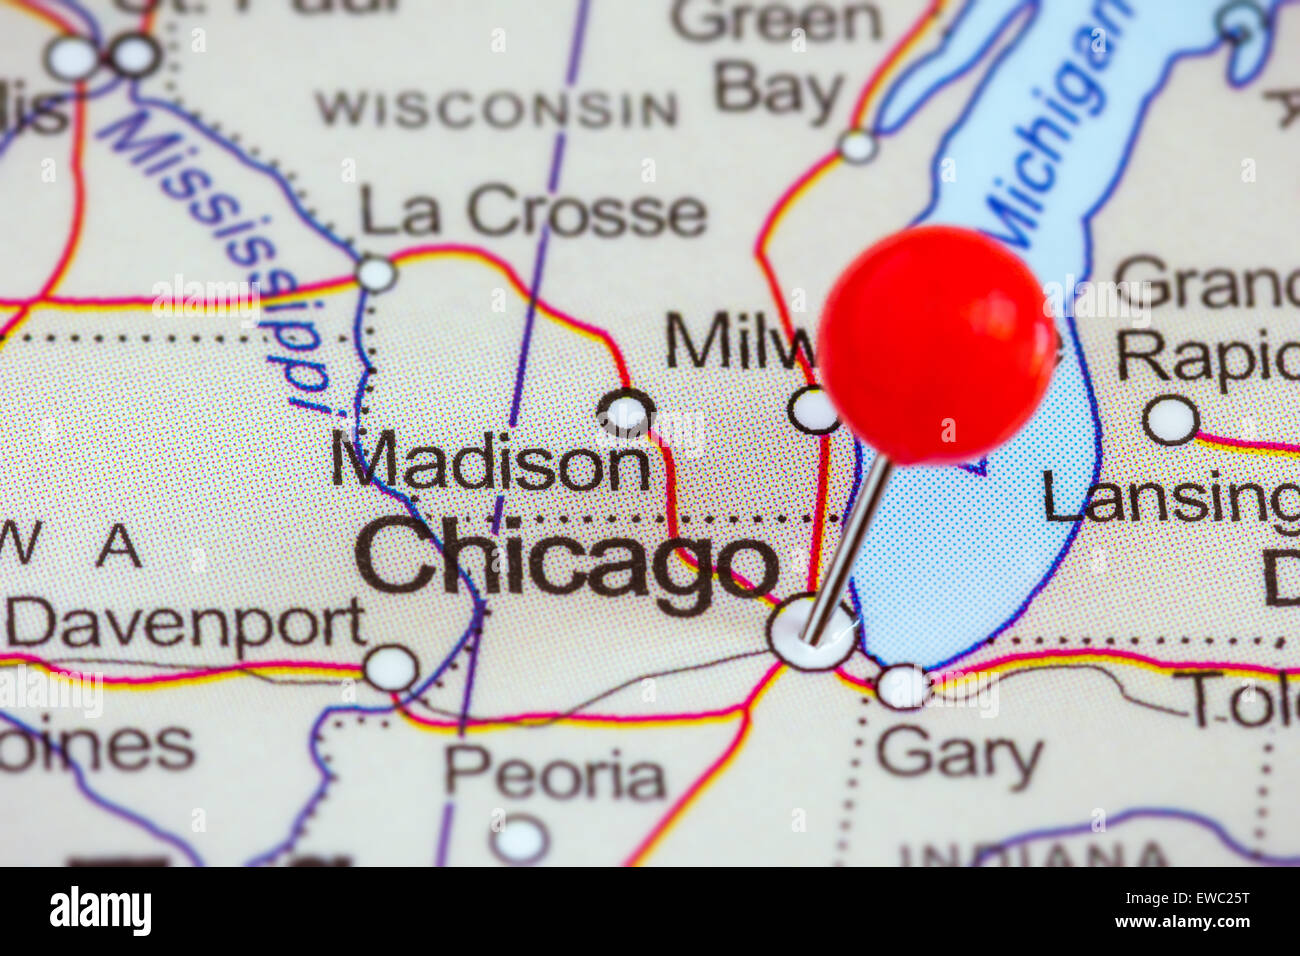 Close-up of a red pushpin on a map of Chicago, USA Stock ... on puerto rico in chicago, money in chicago, bike in chicago, ball in chicago, weather in chicago, usa map in miami, statue of liberty in chicago, animals in chicago, butterflies in chicago, transportation in chicago, nebraska in chicago, home in chicago, turkey in chicago, zip code map in chicago,